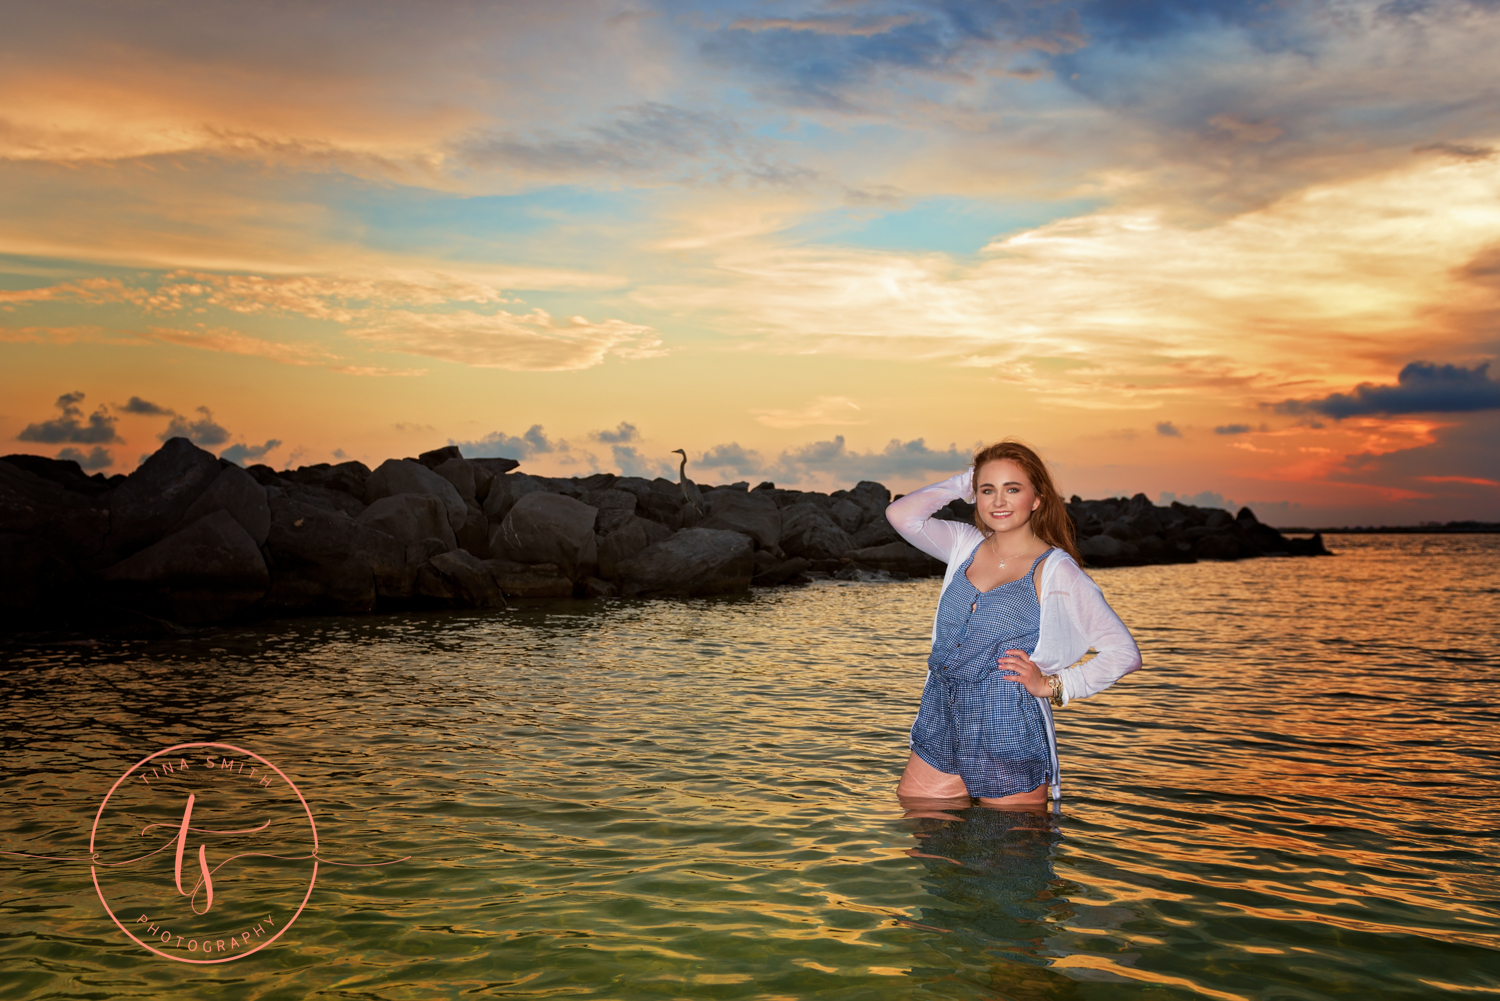 senior girl standing gin the ocean at sunset smiling for pictures